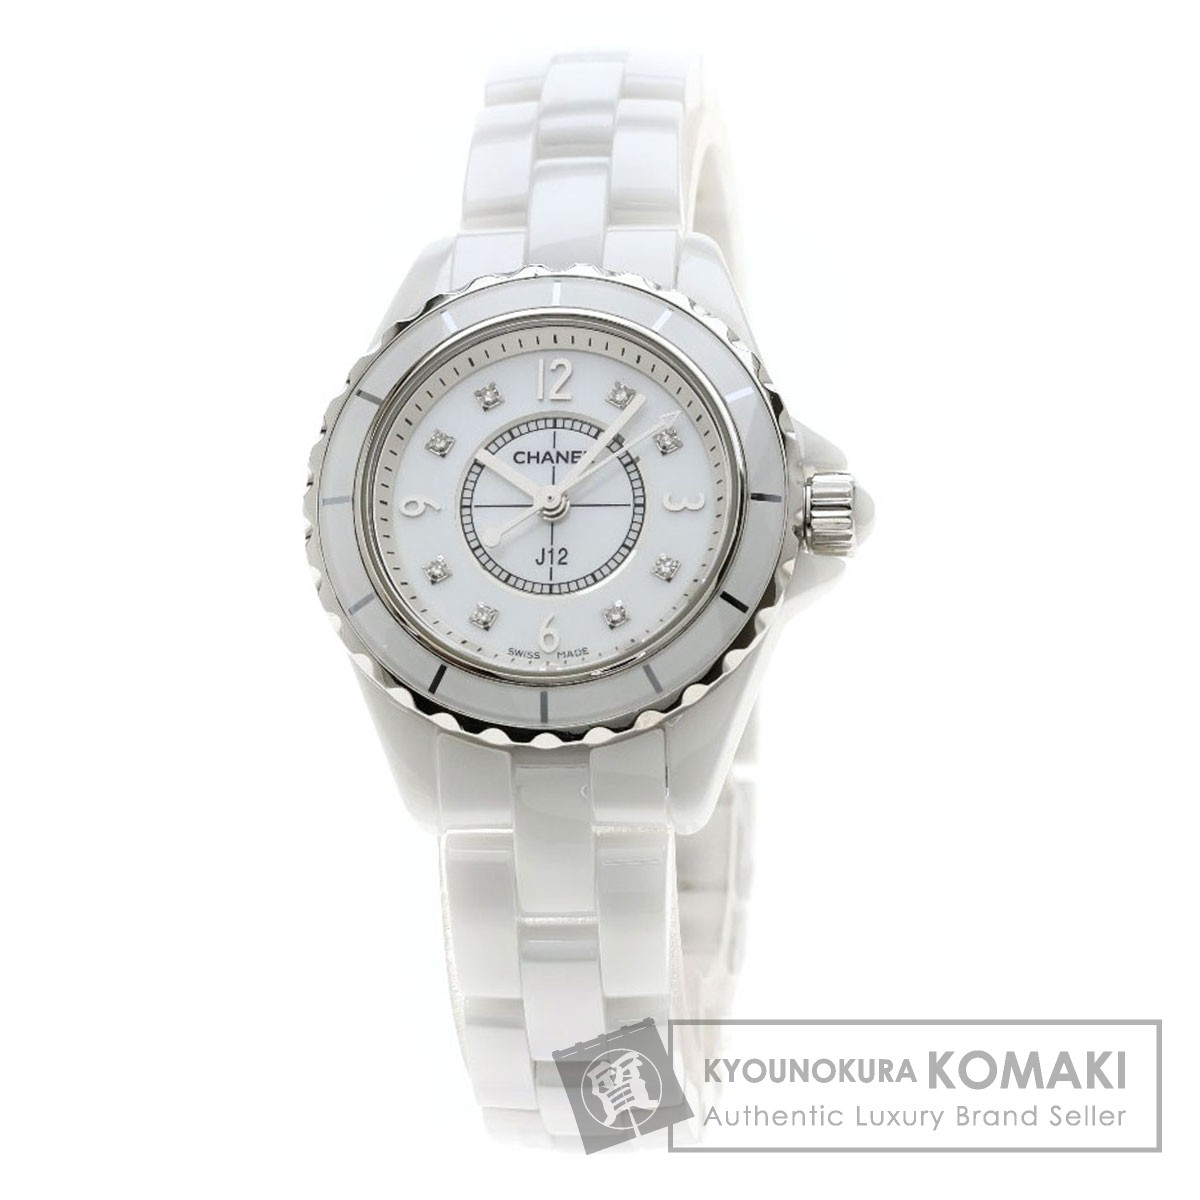 7b955b4fb8ba Kyonokura Komaki Brand Cheapest Challenger: Authentic CHANEL J12 ...